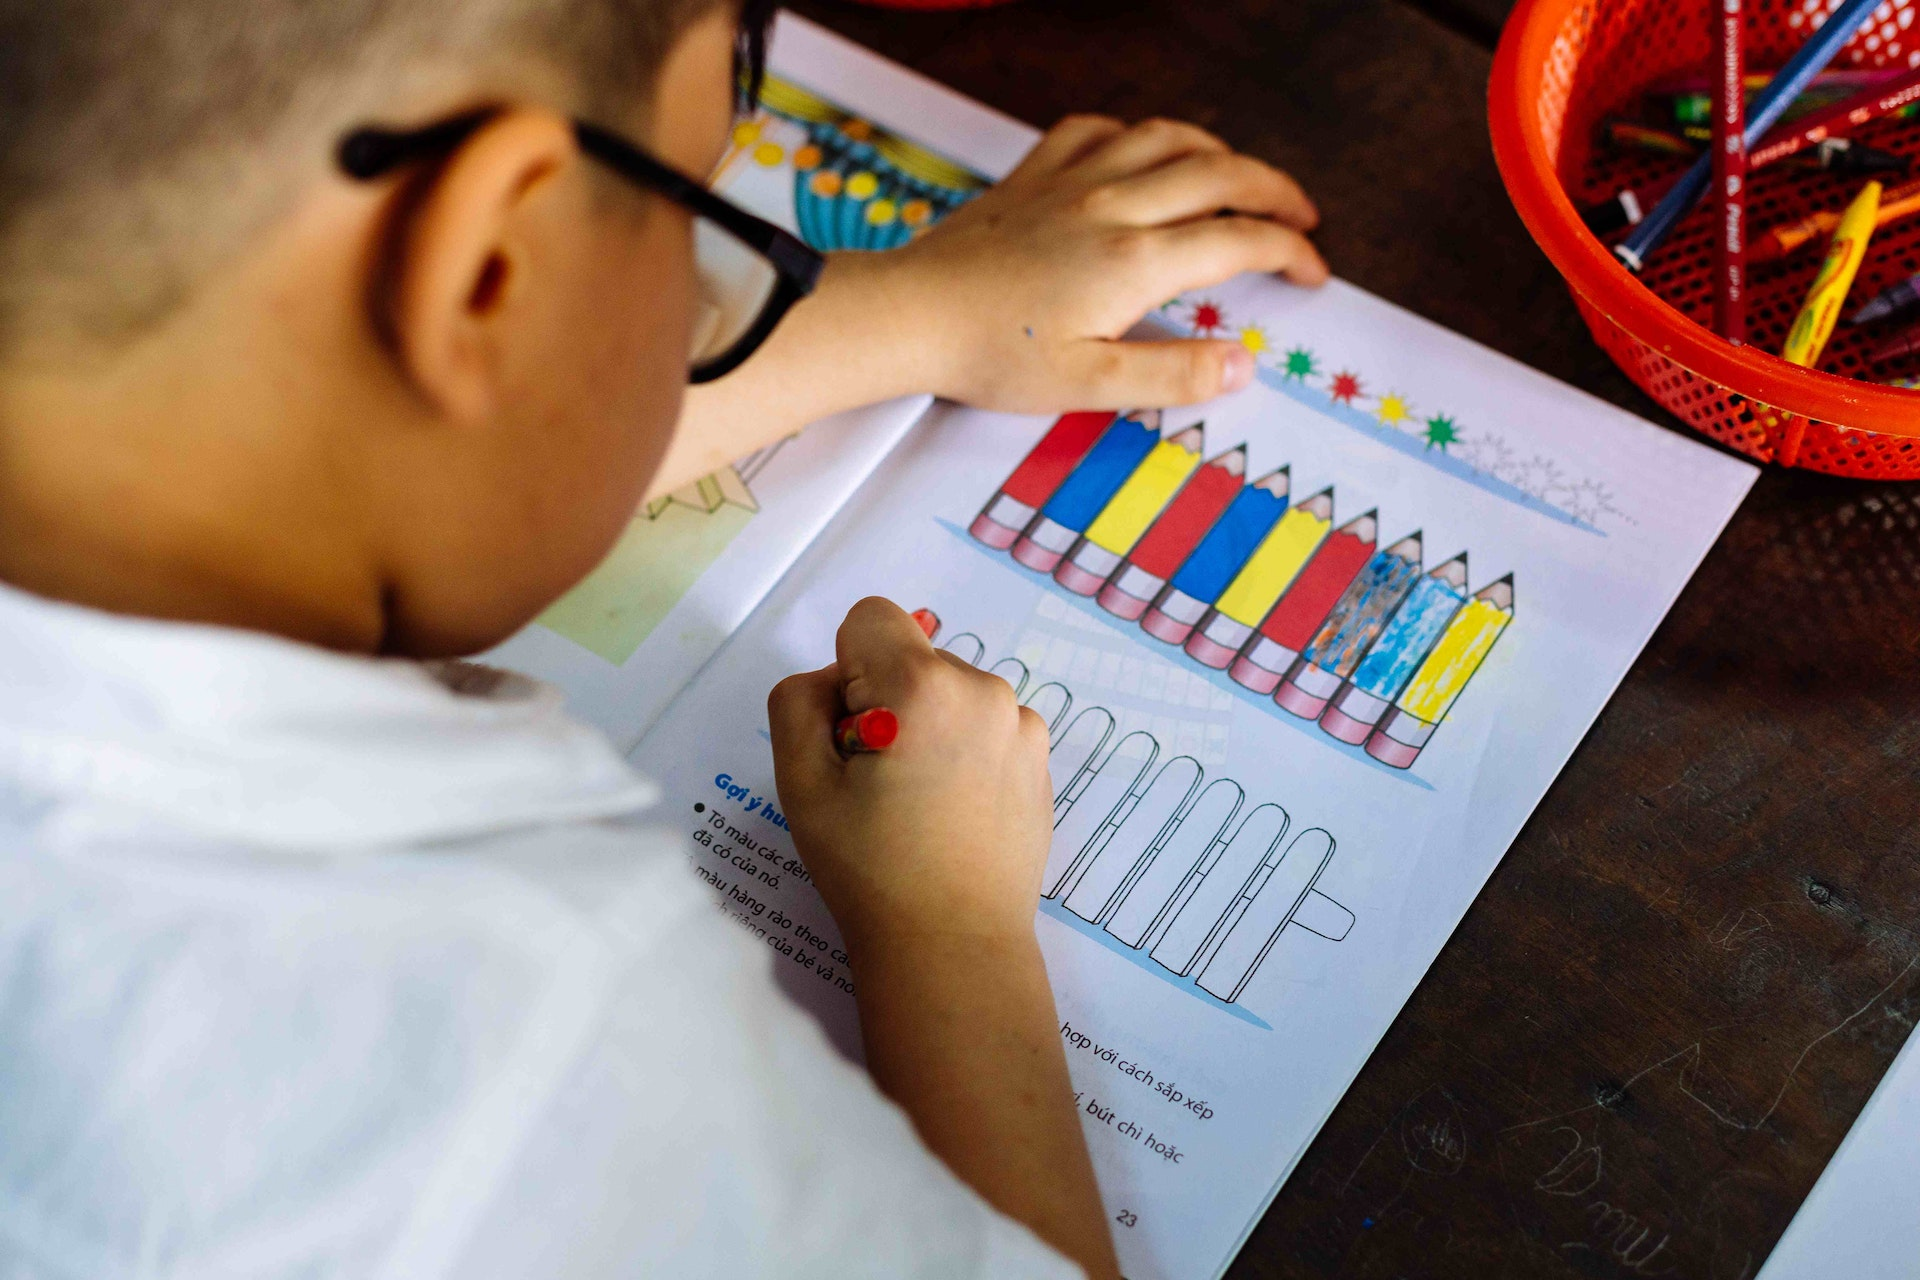 Cataract patient Tam, 5 years, has improved with his reading and writing after pediatric eye surgery